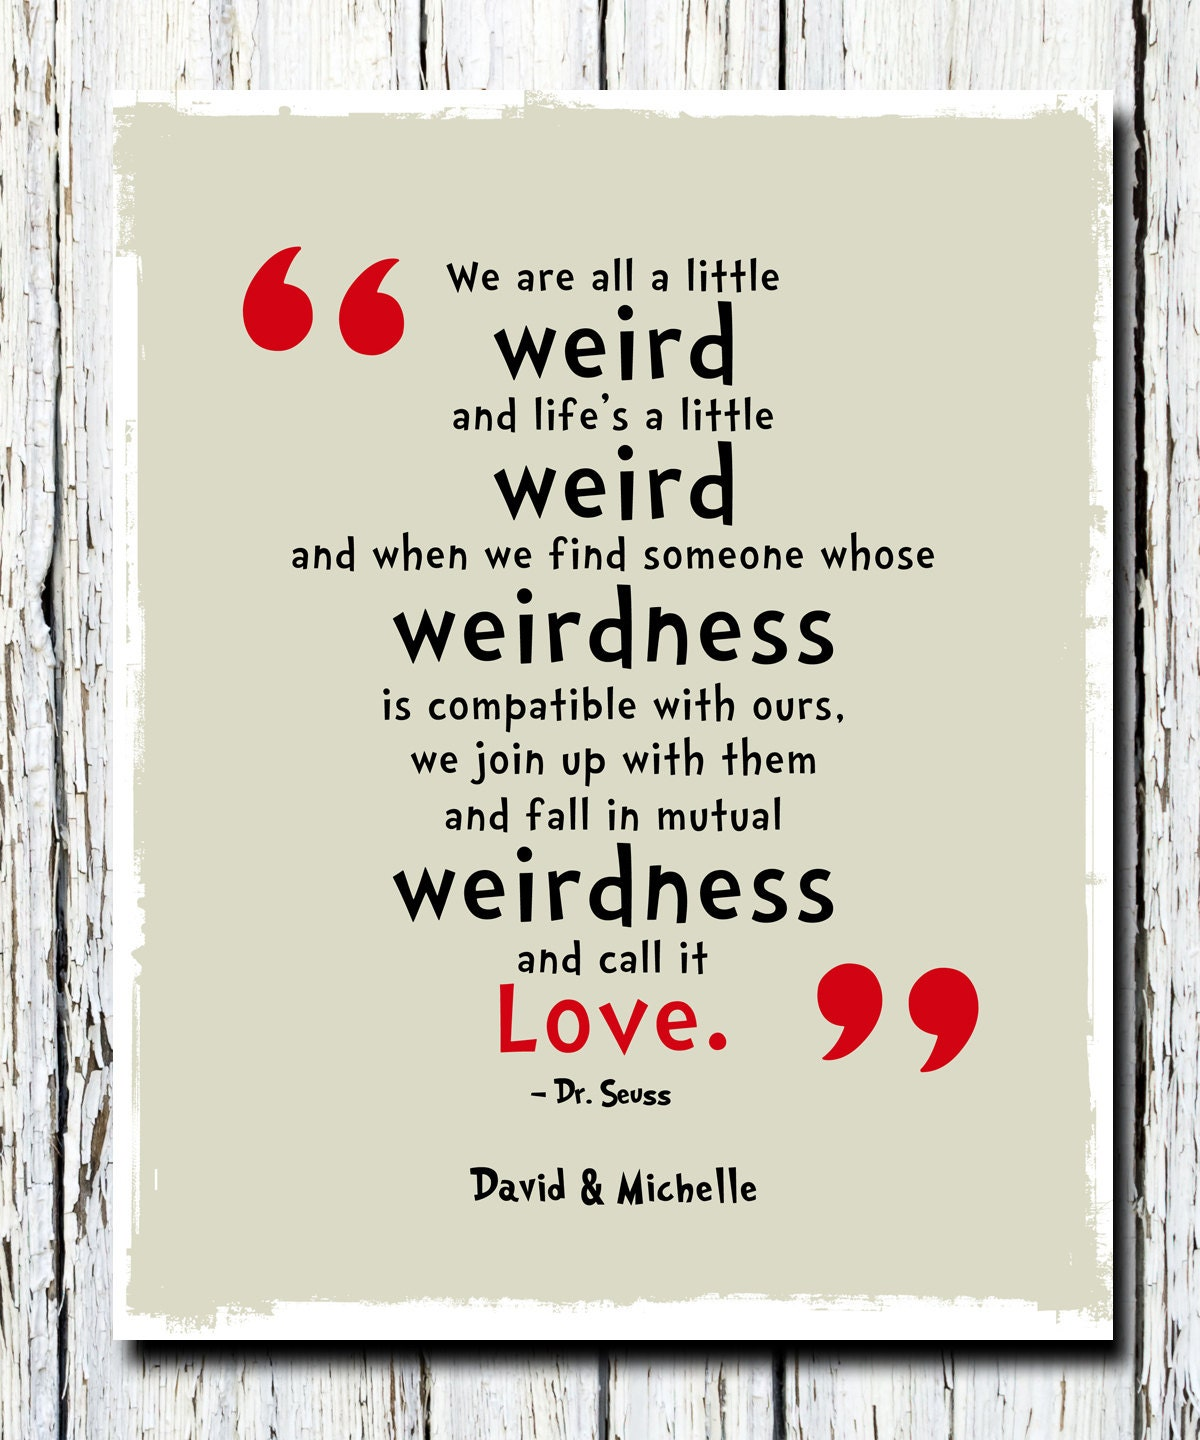 Personalized Dr. Seuss Poster Print We Are All A Little Weird